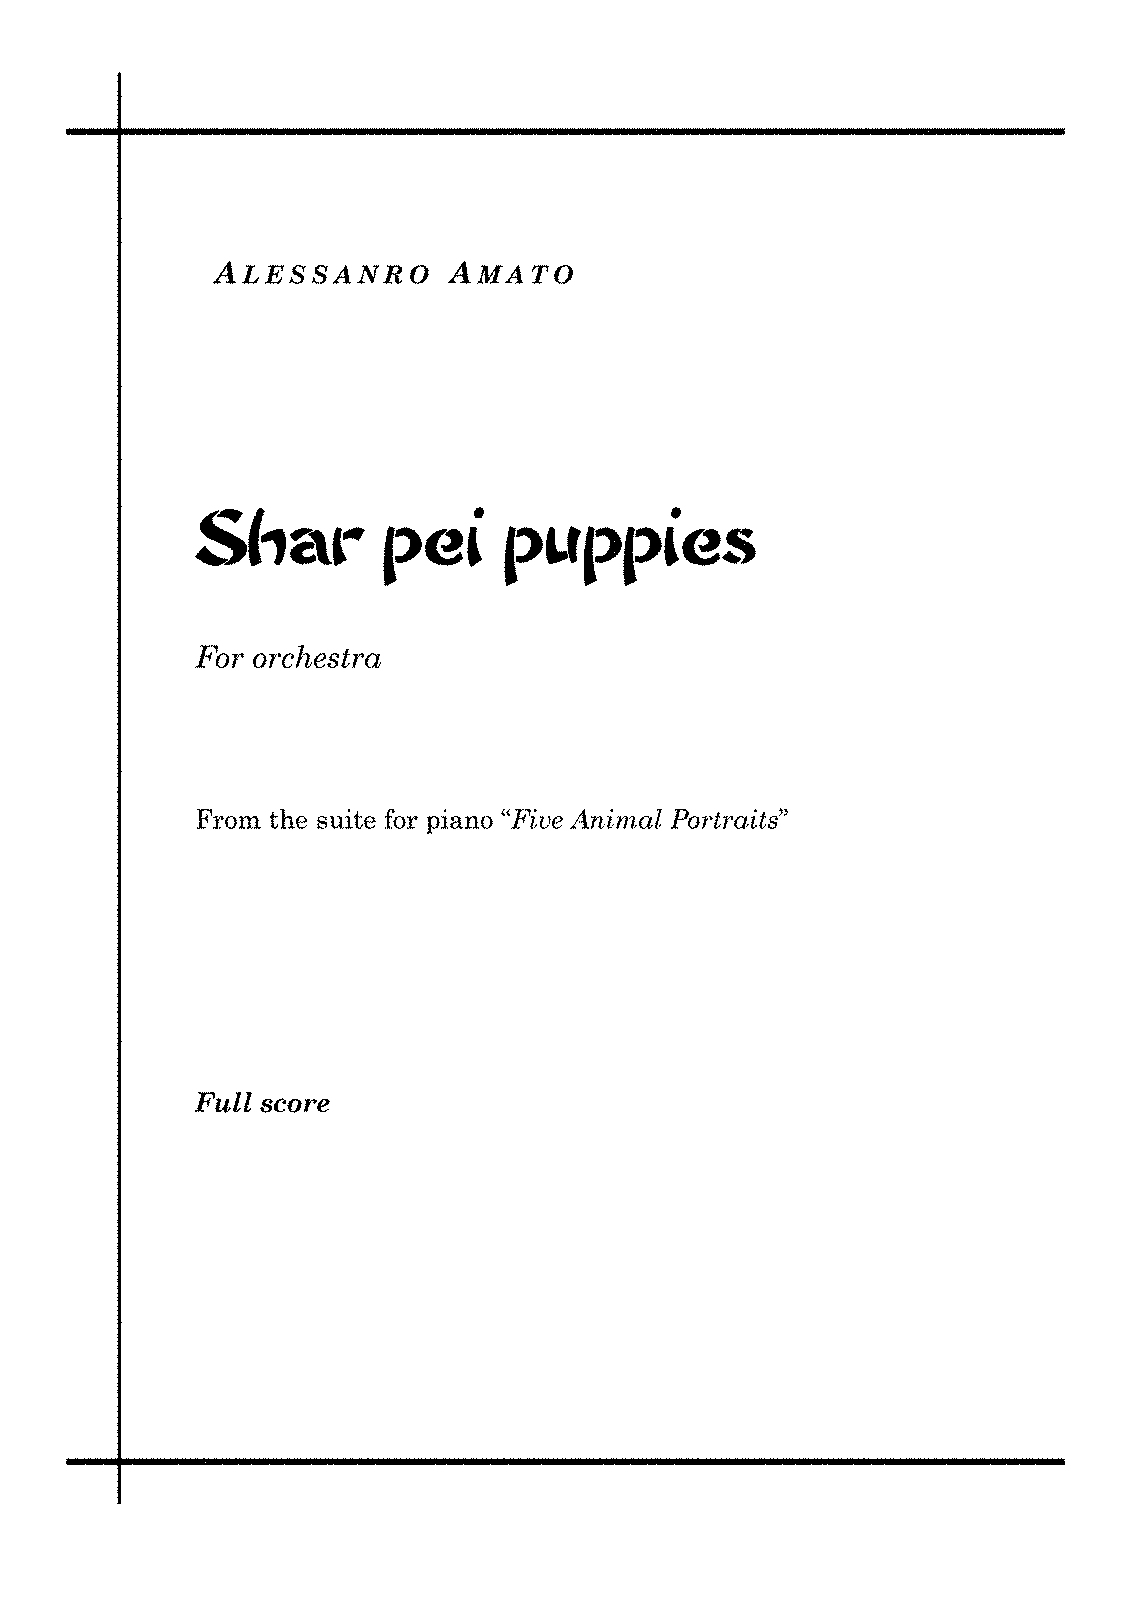 PMLP342748-A Amato - Shar pei puppies.pdf